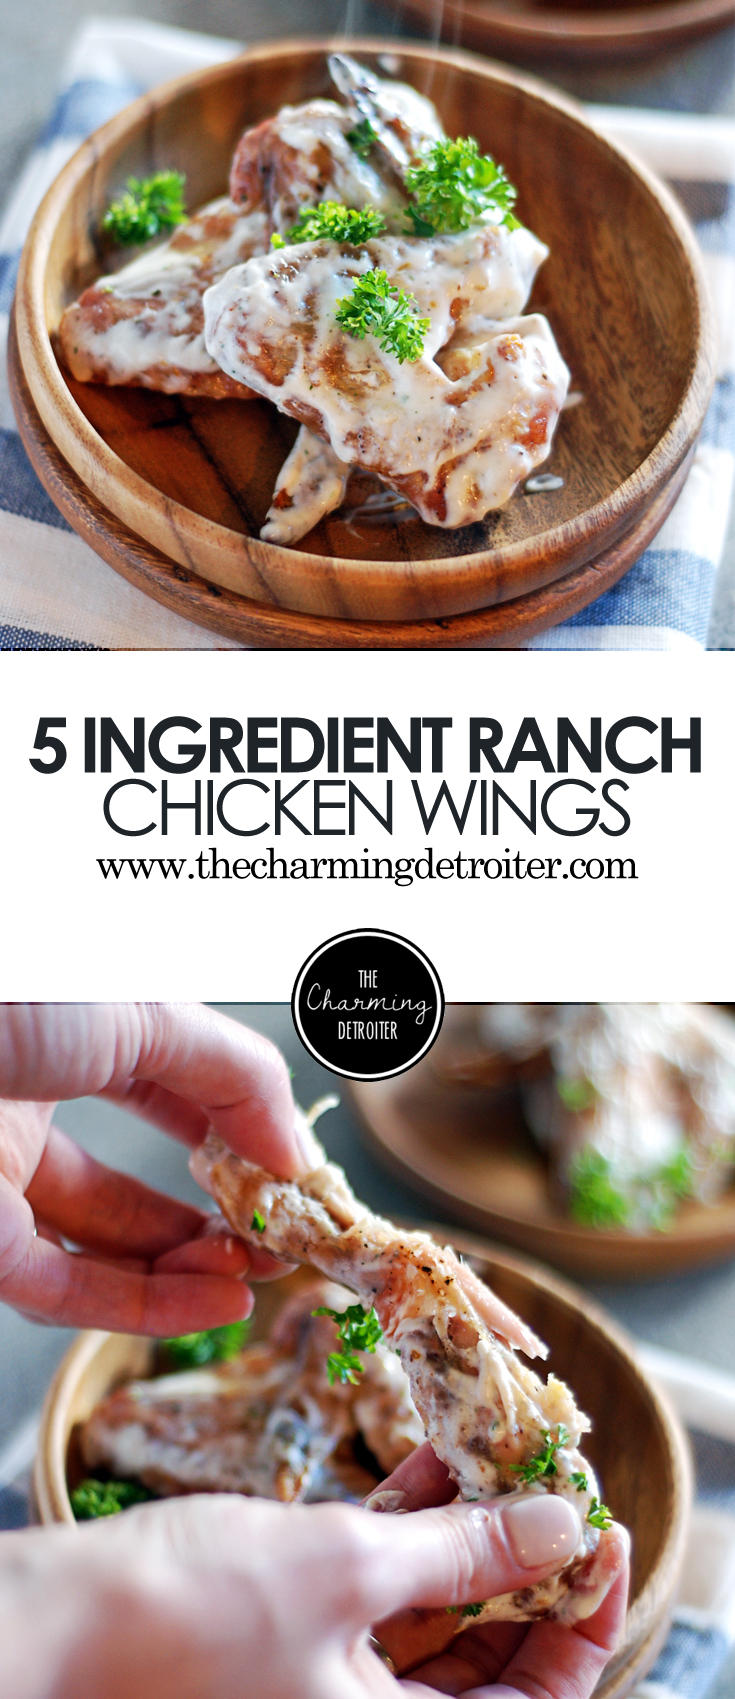 These baked ranch chicken wings are made with just 5 ingredients and come together in just 45 minutes, with a creamy ranch dressing based sauce!